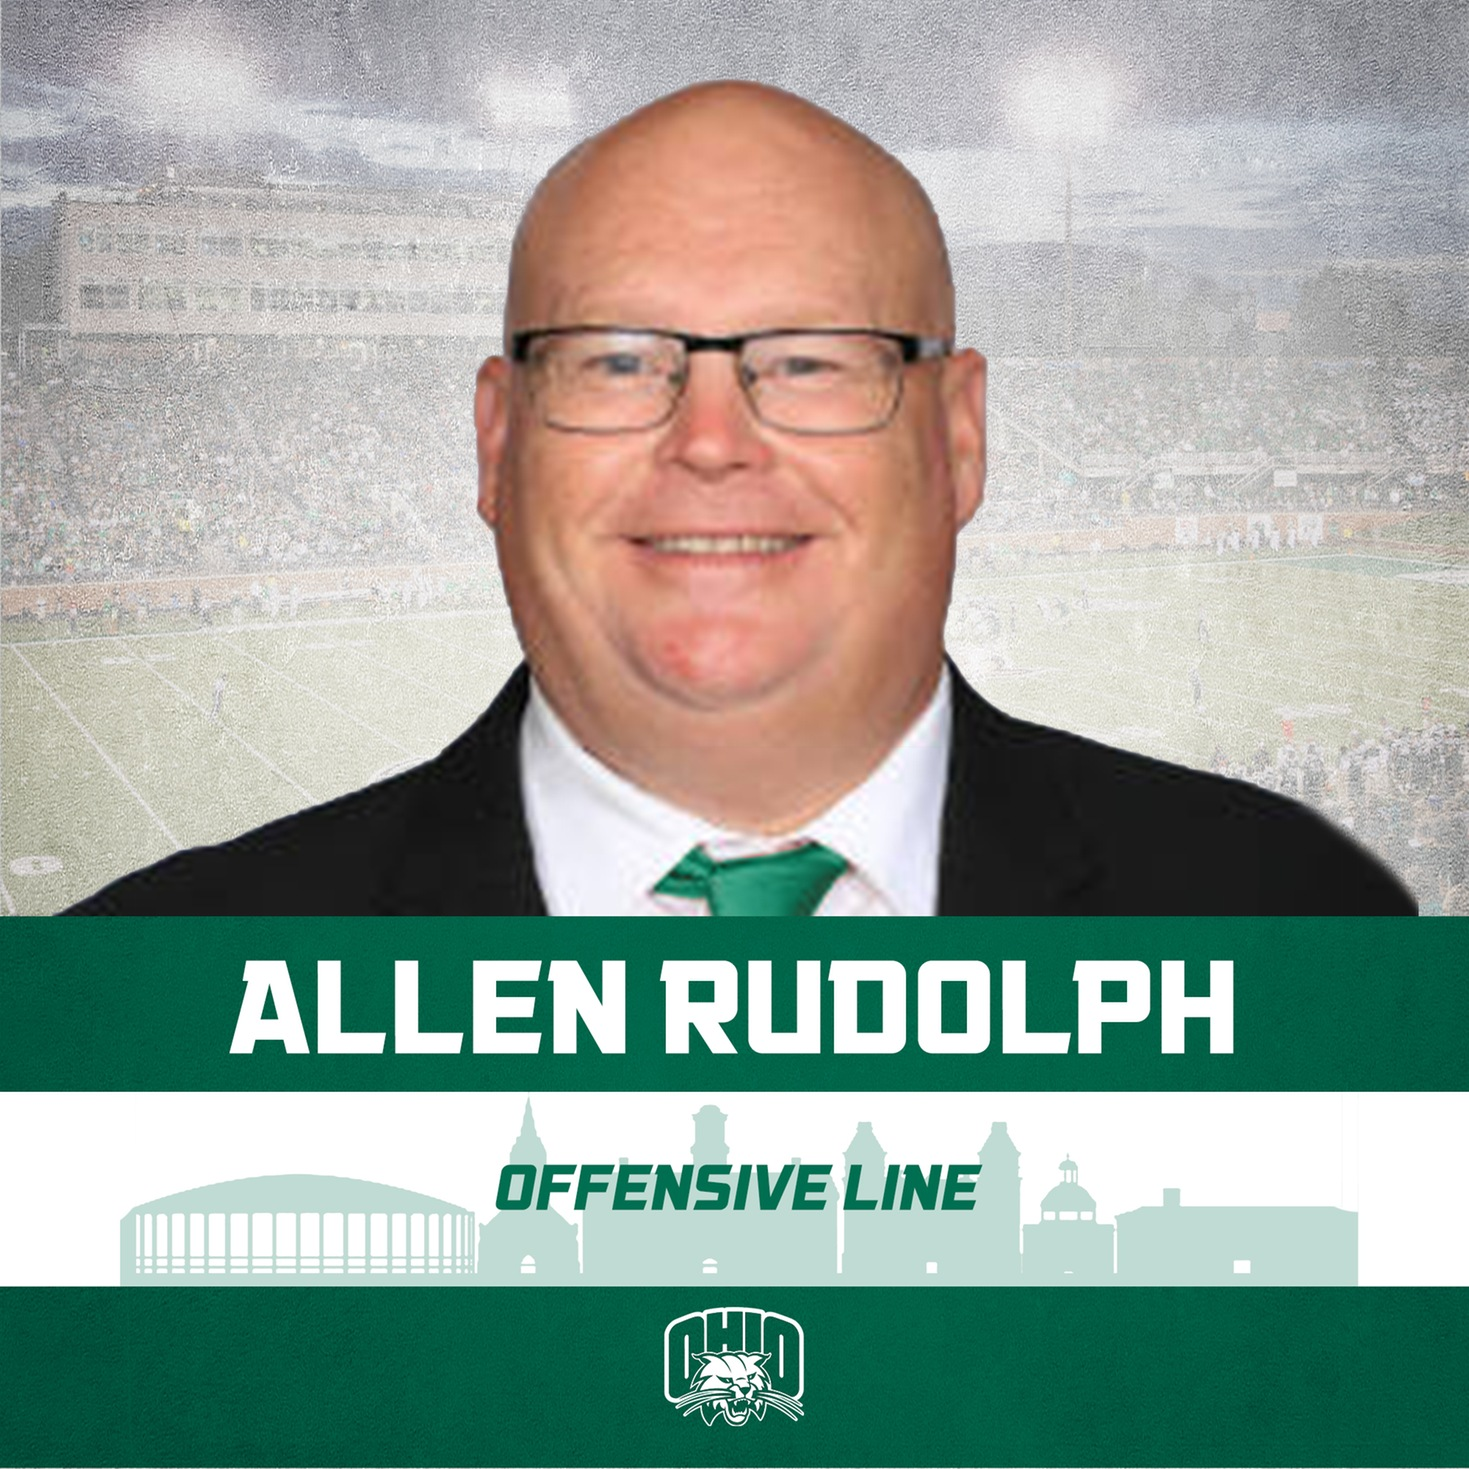 Ohio Football Announces Rudolph As Offensive Line Coach, Promotions Of Albin, Germano